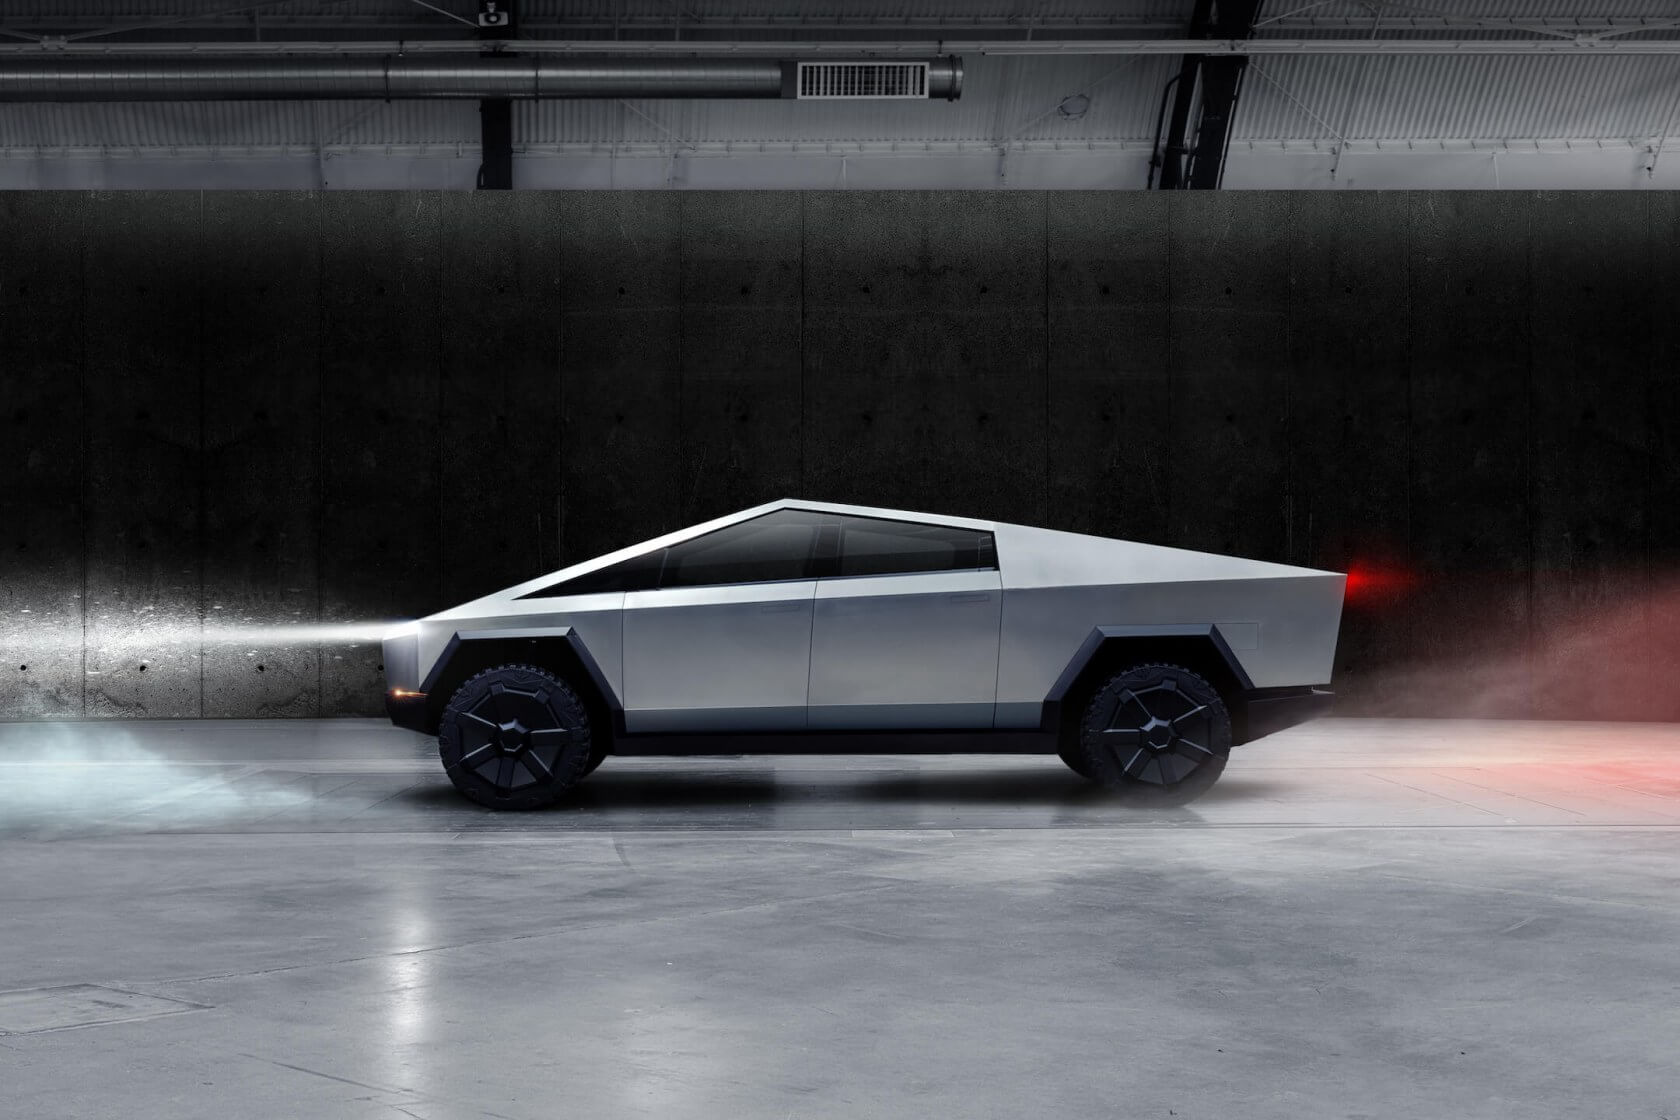 Tesla's futuristic Cybertruck revealed: up to 500 miles of range, can go 0-60 in 2.9 seconds